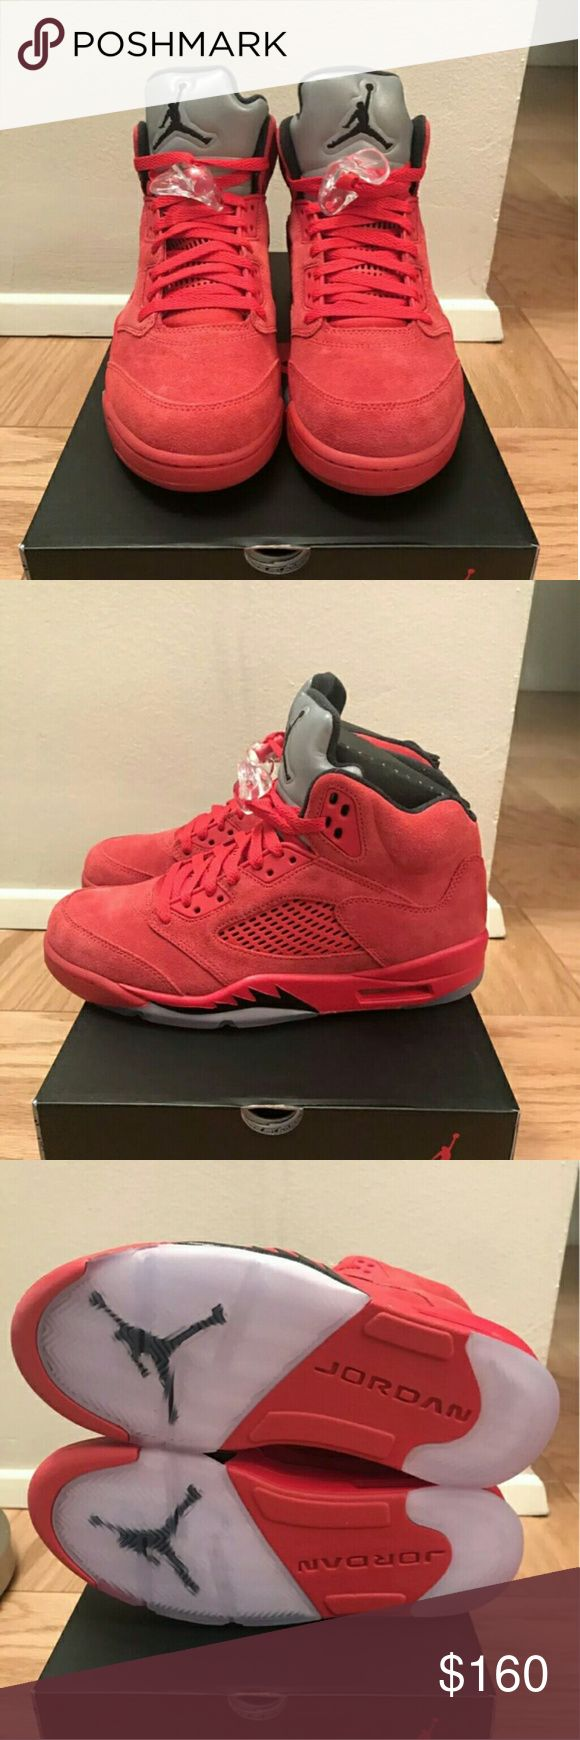 Jordan 5s Red Suede Brand new retro Jordans 5s ,100% authentic,  smooth suede material,  comes with original box and receipt, different sizes available Jordan Shoes Sneakers